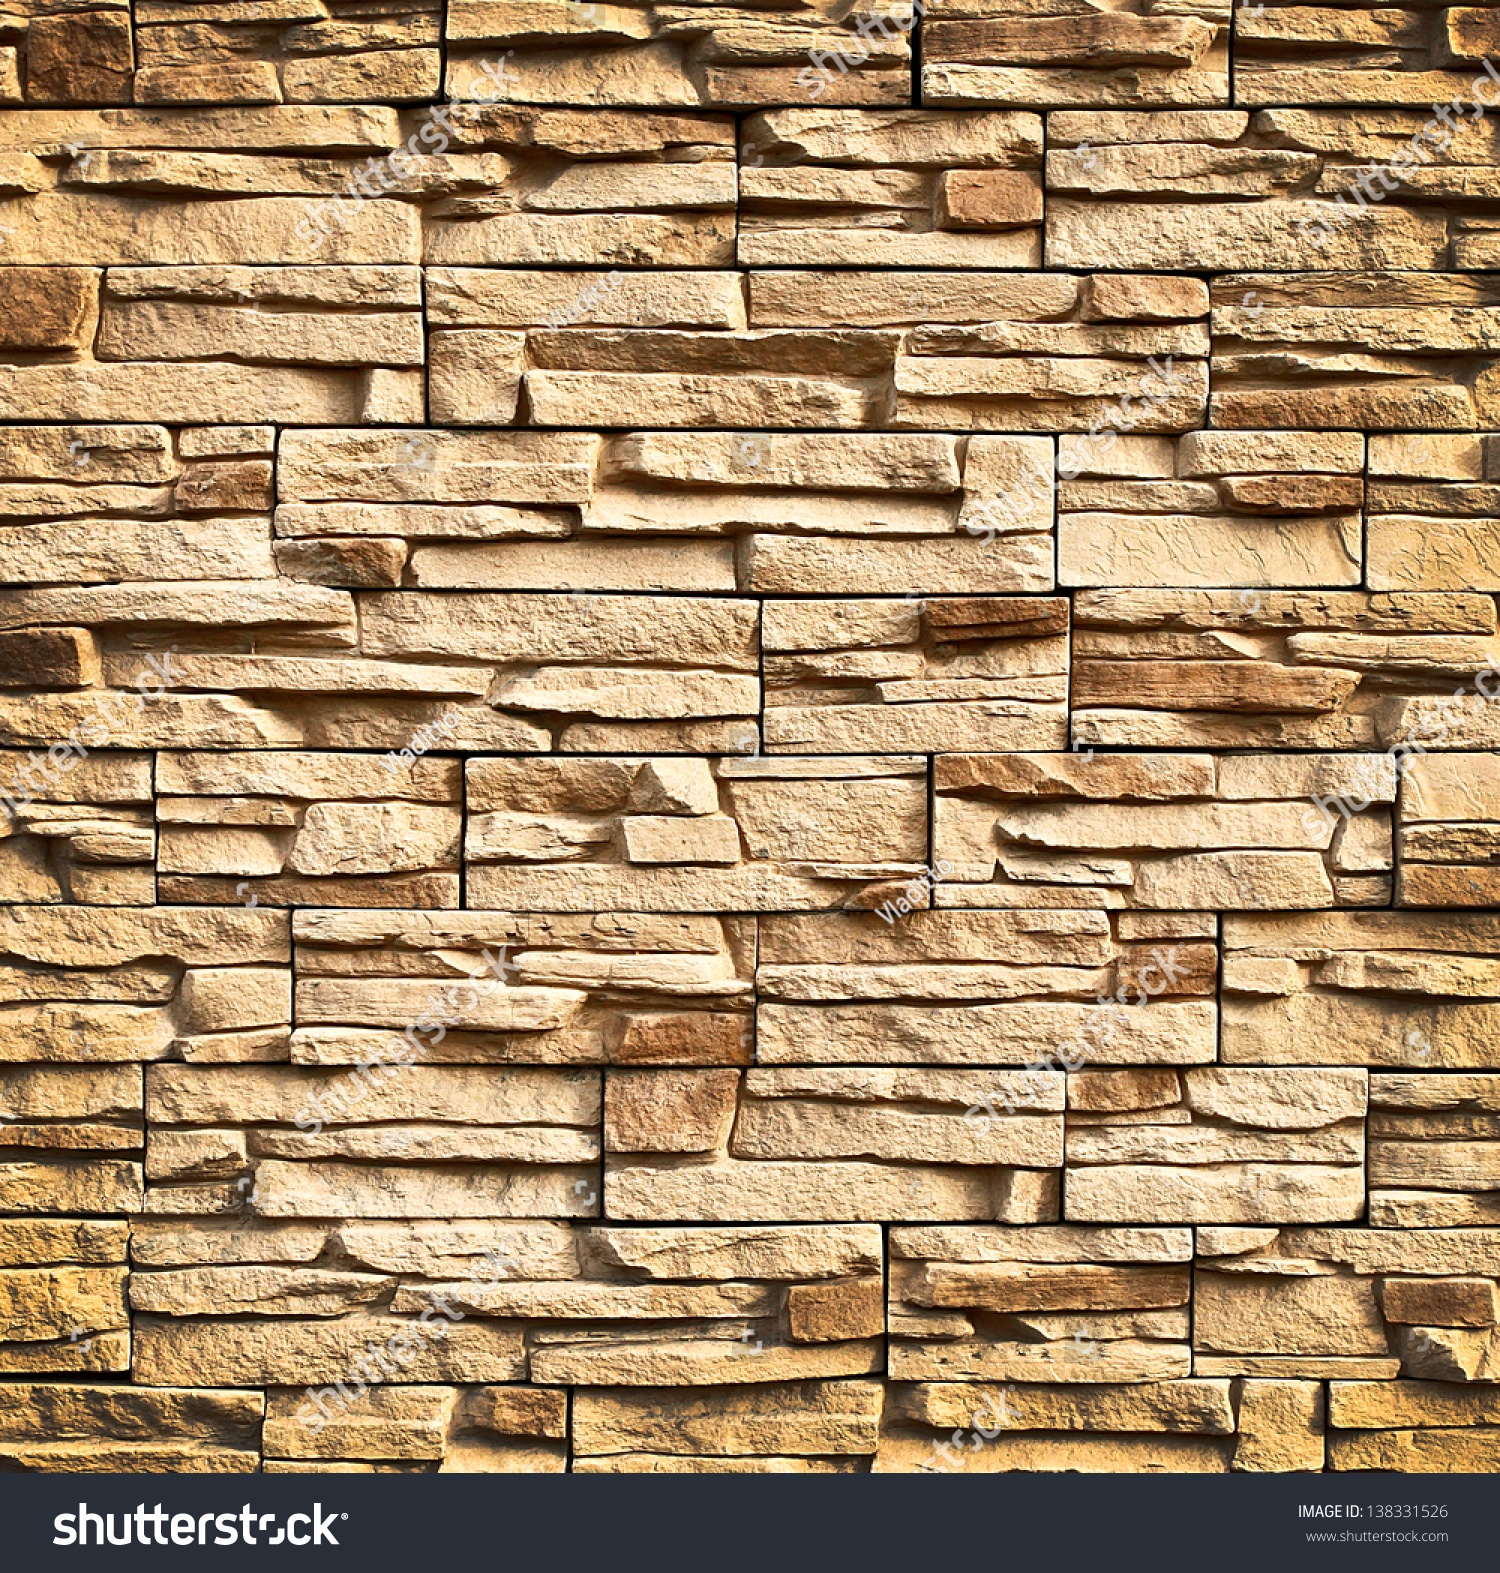 pictures rock wall stacked texture walls stone este interior tierra awesome